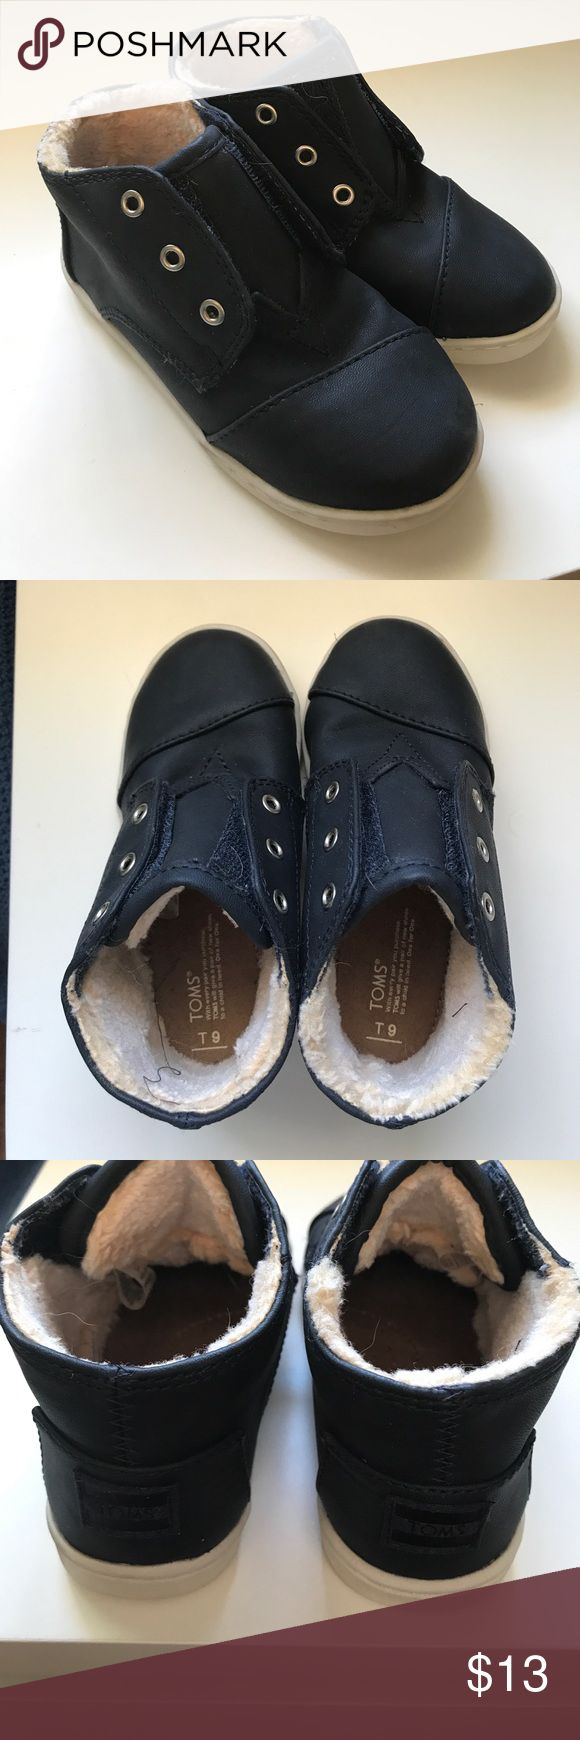 Toms kids Toms kids size 9 Used 2 times TOMS Shoes Boots